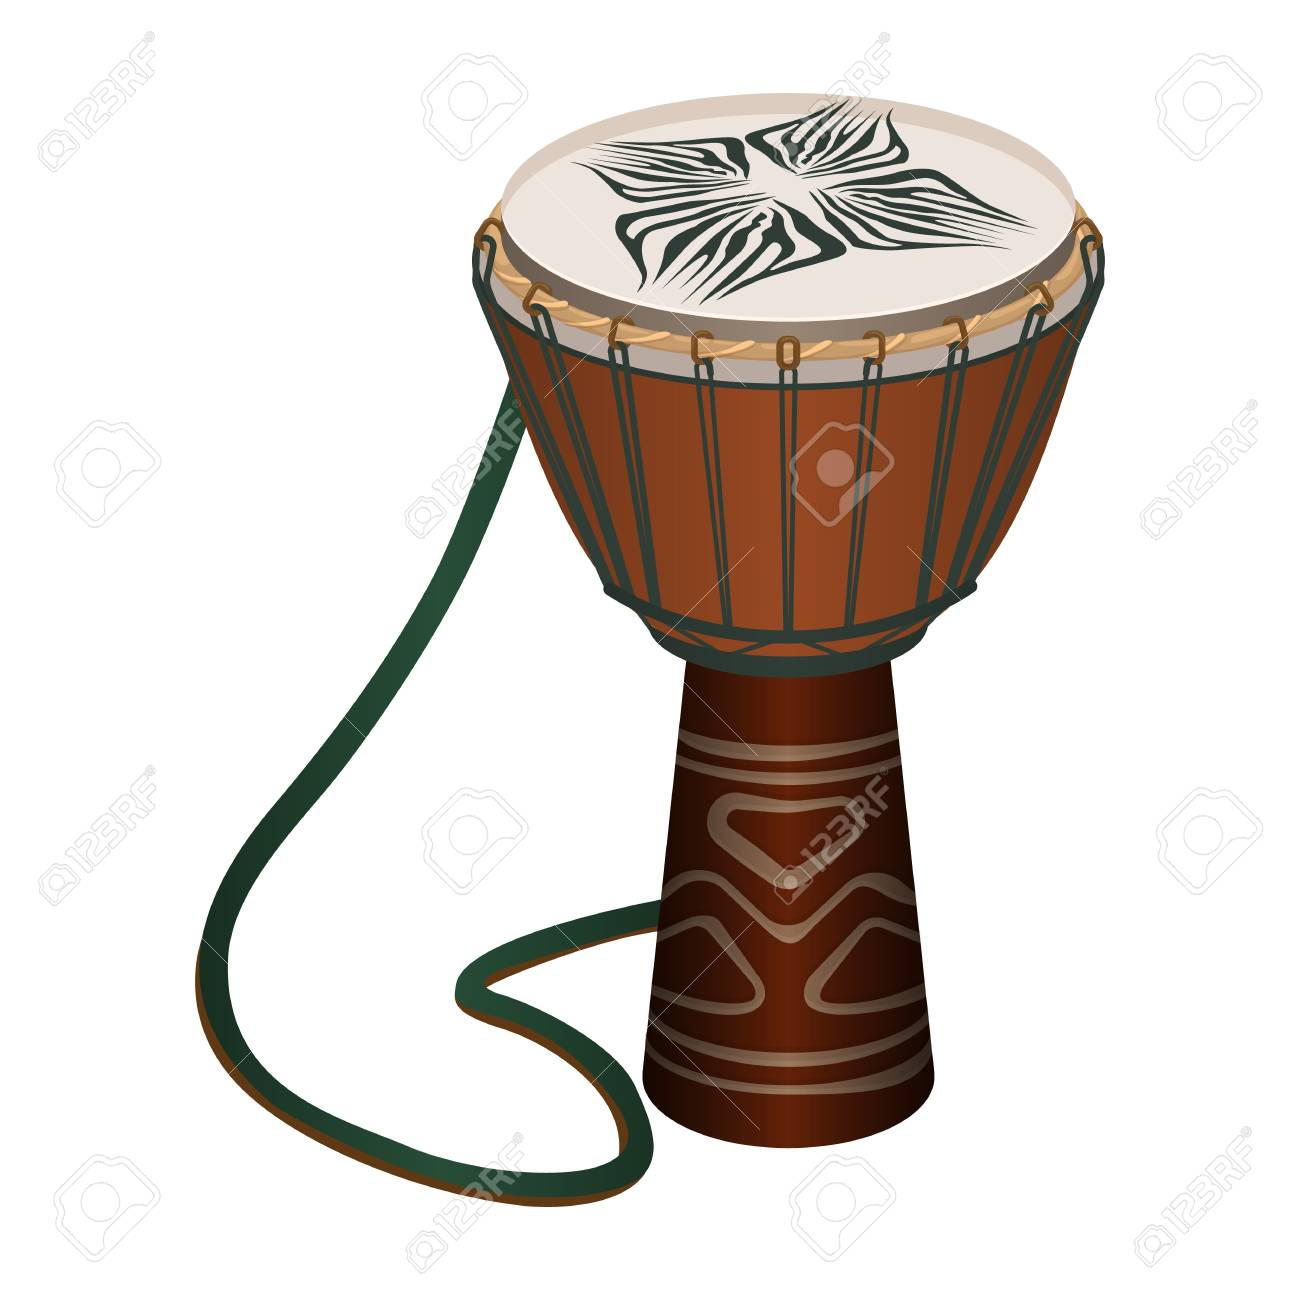 Authentic African Wooden Djembe With Patterns And Long Rope